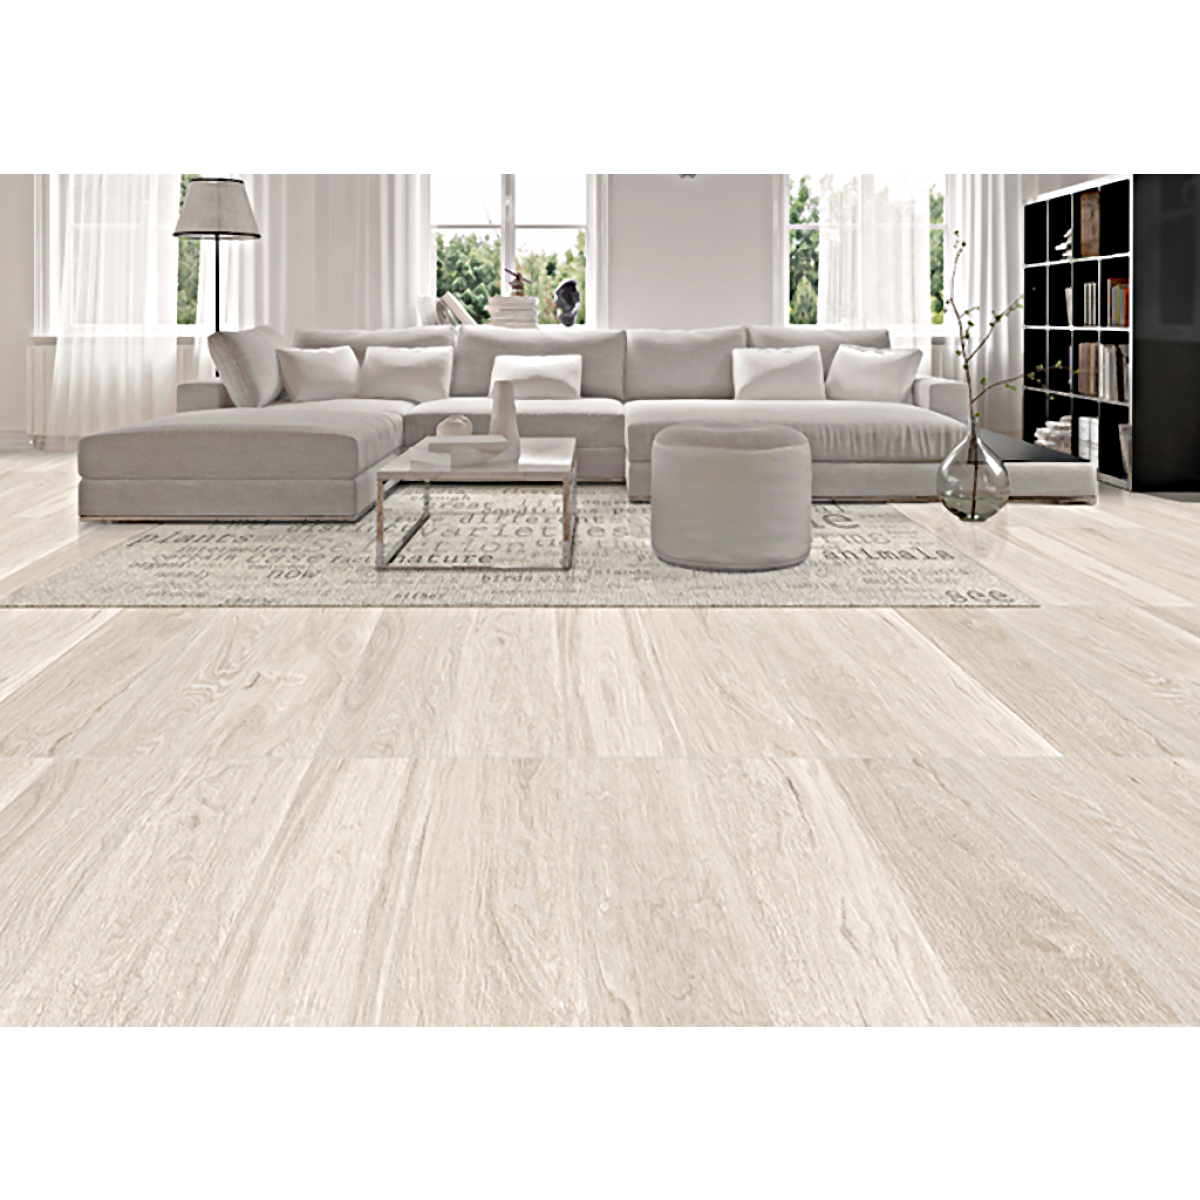 White wood effect porcelain tiles sample 230 mm x150 mm kenia white wood effect porcelain tiles sample 230 mm x150 mm dailygadgetfo Gallery